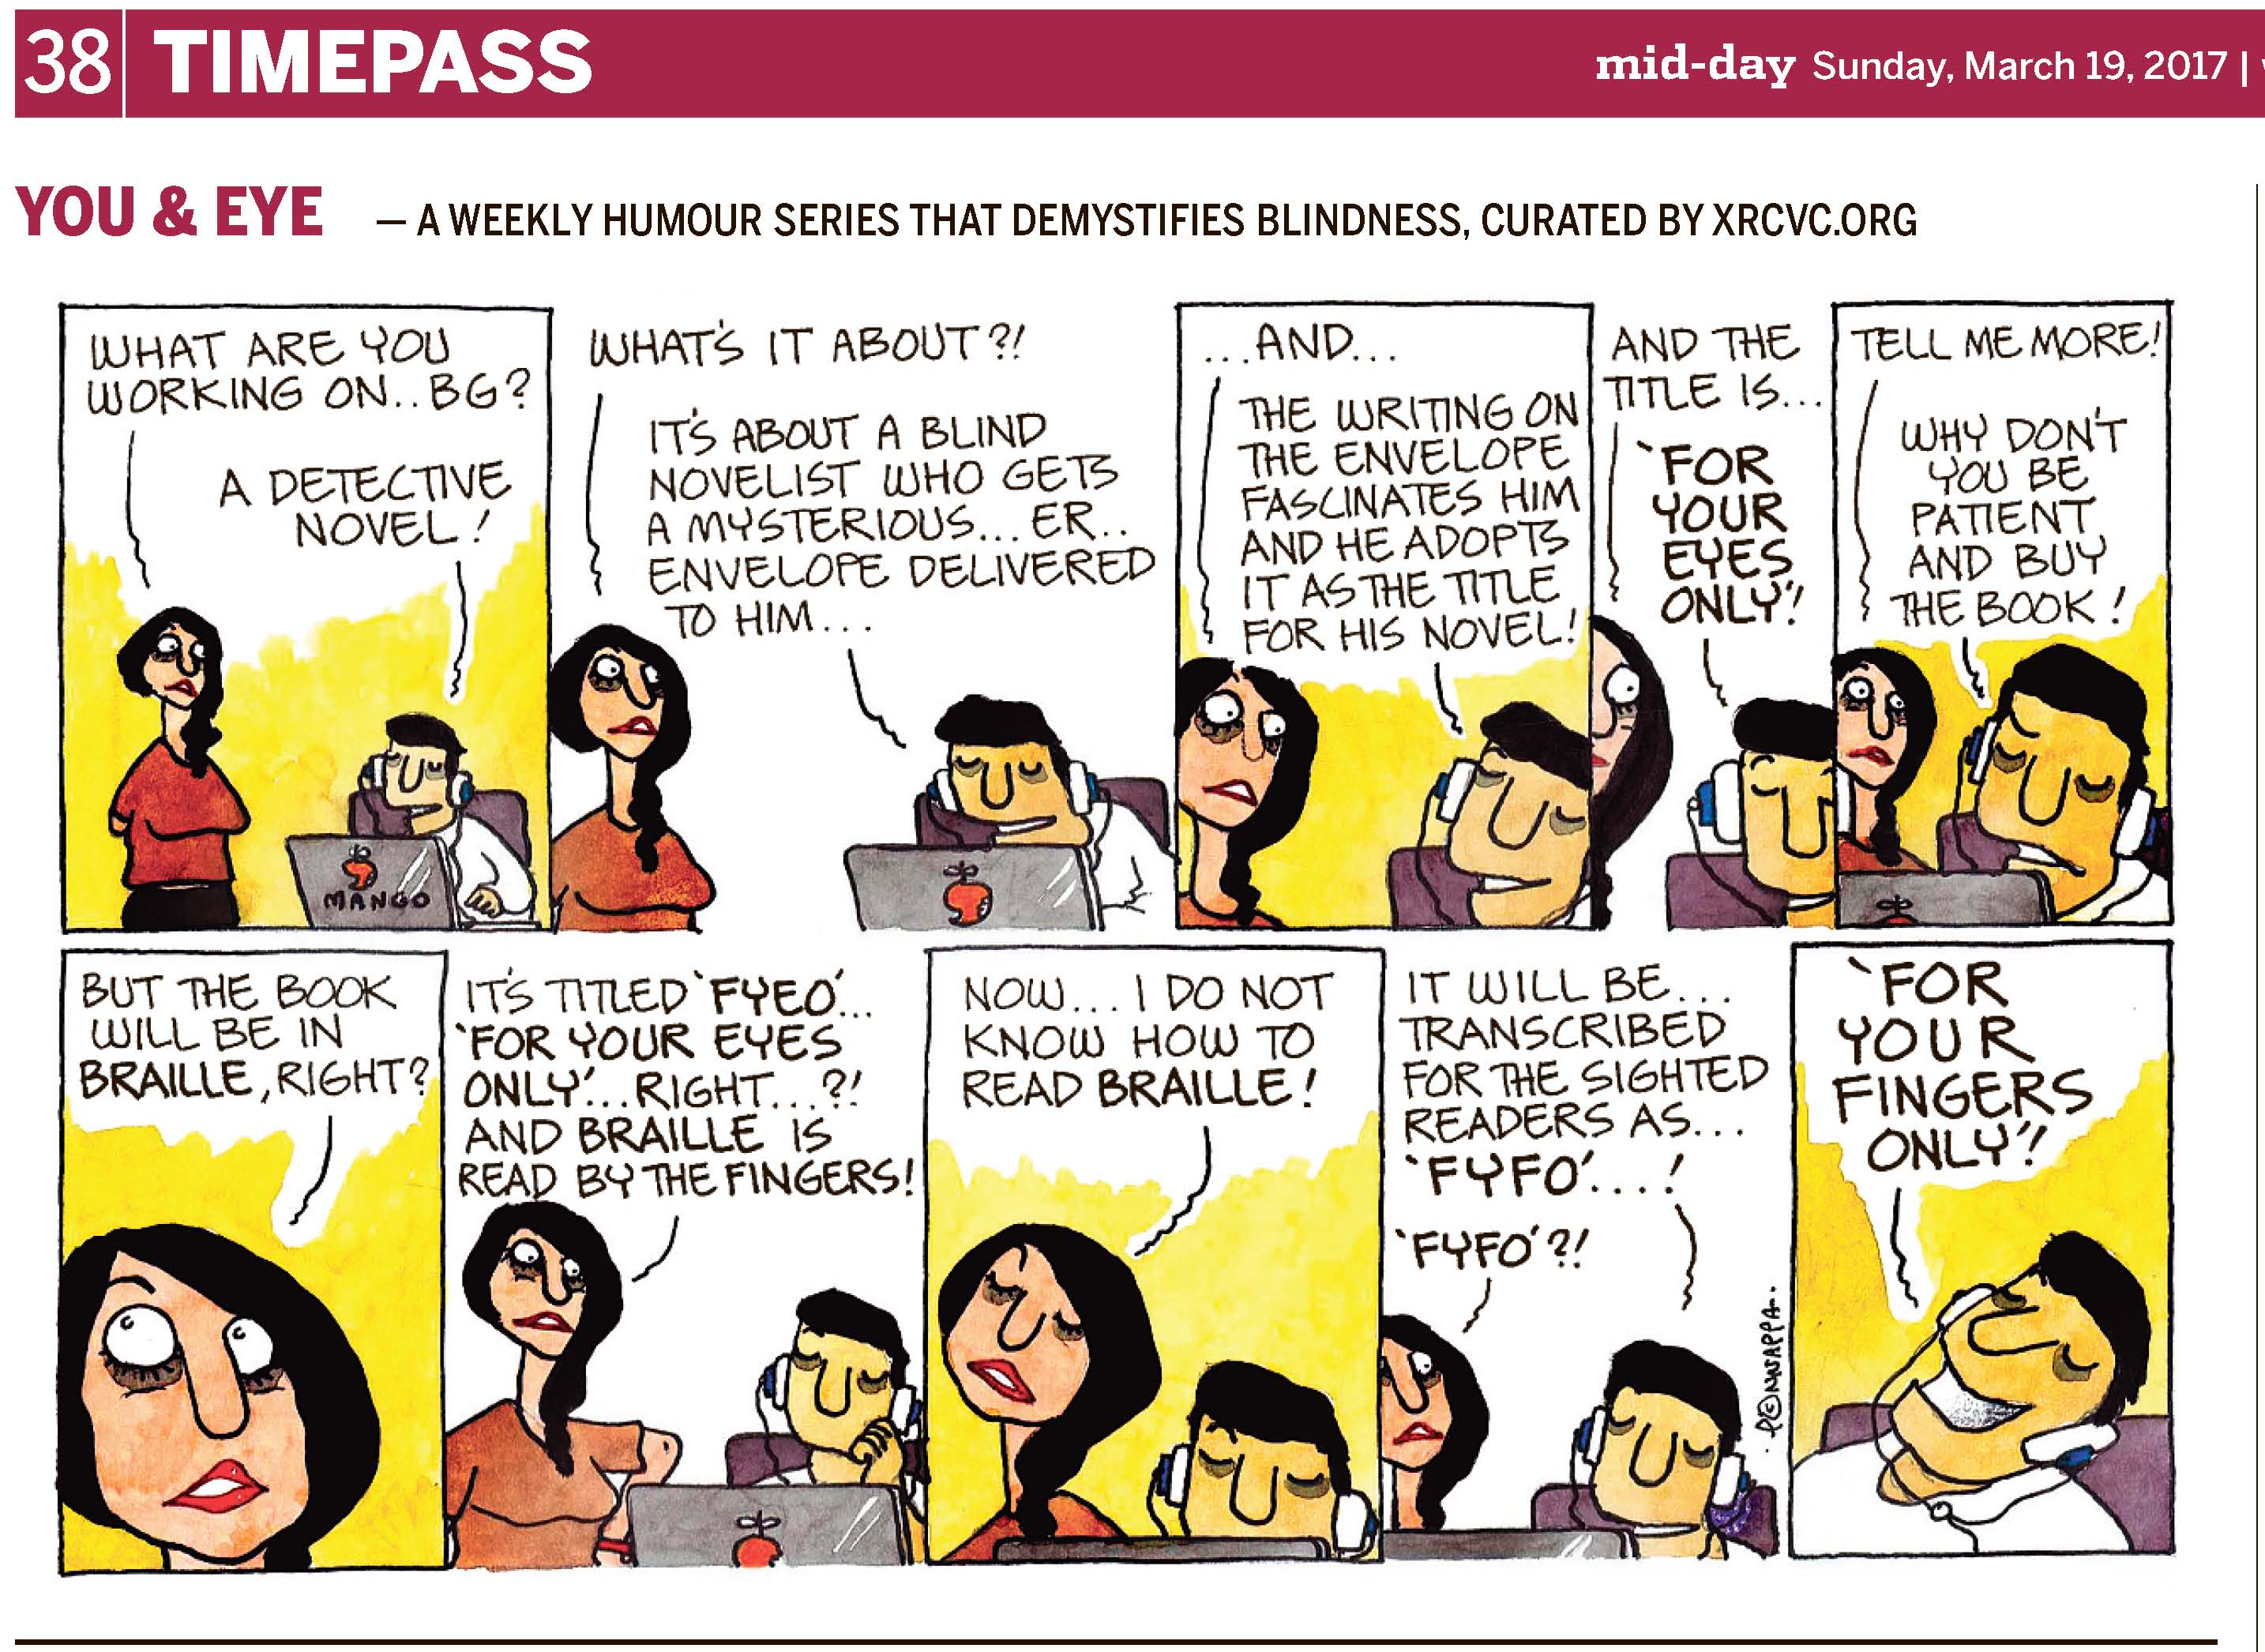 (top-left) 38 | TIMEPASS (top-right) mid-day Sunday, March 19, 2017 | YOU & EYE – A WEEKLY HUMOUR SERIES THAT DEMYSTIFIES BLINDNESS, CURATED BY XRCVC.ORG Image description: A cartoon strip with 10 frames… Frame 1: (Tippy stands with her hands behind her back, watching BG who has headphones on while working on a laptop with a logo of a bitten mango and the word MANGO written below it.) Tippy: What are you working on… BG? BG: A detective novel! Frame 2: (Tippy looks intently towards BG who continues to work on the laptop with headphones on) Tippy: What's it about? BG: It's about a blind novelist who gets a mysterious… er… envelope delivered to him… Frame 3: (A close-up of Tippy looking inquisitively wide-eyed at BG who is smiling) Tippy: … and… BG: The writing on the envelope fascinates him and he adopts it as the title for his novel! Frame 4: (A close-up of Tippy and BG whose faces are seen only partially) Tippy: And the title is… BG: 'For Your Eyes Only'! Frame 5: (Tippy seems slightly disappointed as the left side of her mouth droops. BG appears irritated) Tippy: Tell me more! BG: Why don't you be patient and buy the book! Frame 6: (A close-up of Tippy looking to her top-right with raised eyebrows, in wonder) Tippy: But the book will be in Braille, right? Frame 7: (Tippy rests her left hand on her hip while looking at BG who is resting his face on his left hand while still working at the laptop with headphones on) Tippy: It's titled 'F Y E O'…. 'For Your Eyes Only'… right…?! And Braille is read by the fingers! Frame 8: (Tippy looks away from BG with closed eyes) Tippy: Now… I do not know how to read Braille! Frame 9: (Tippy appears dumbfounded as she looks at BG smiling) BG: It will be… transcribed for the sighted readers as… 'F Y F O'…! Tippy: 'F Y F O'?! Frame 10: (BG looks upwards as he laughs out loud with his mouth open wide) BG: 'For Your Fingers Only'! (Signed Ponnappa, in Frame 9)